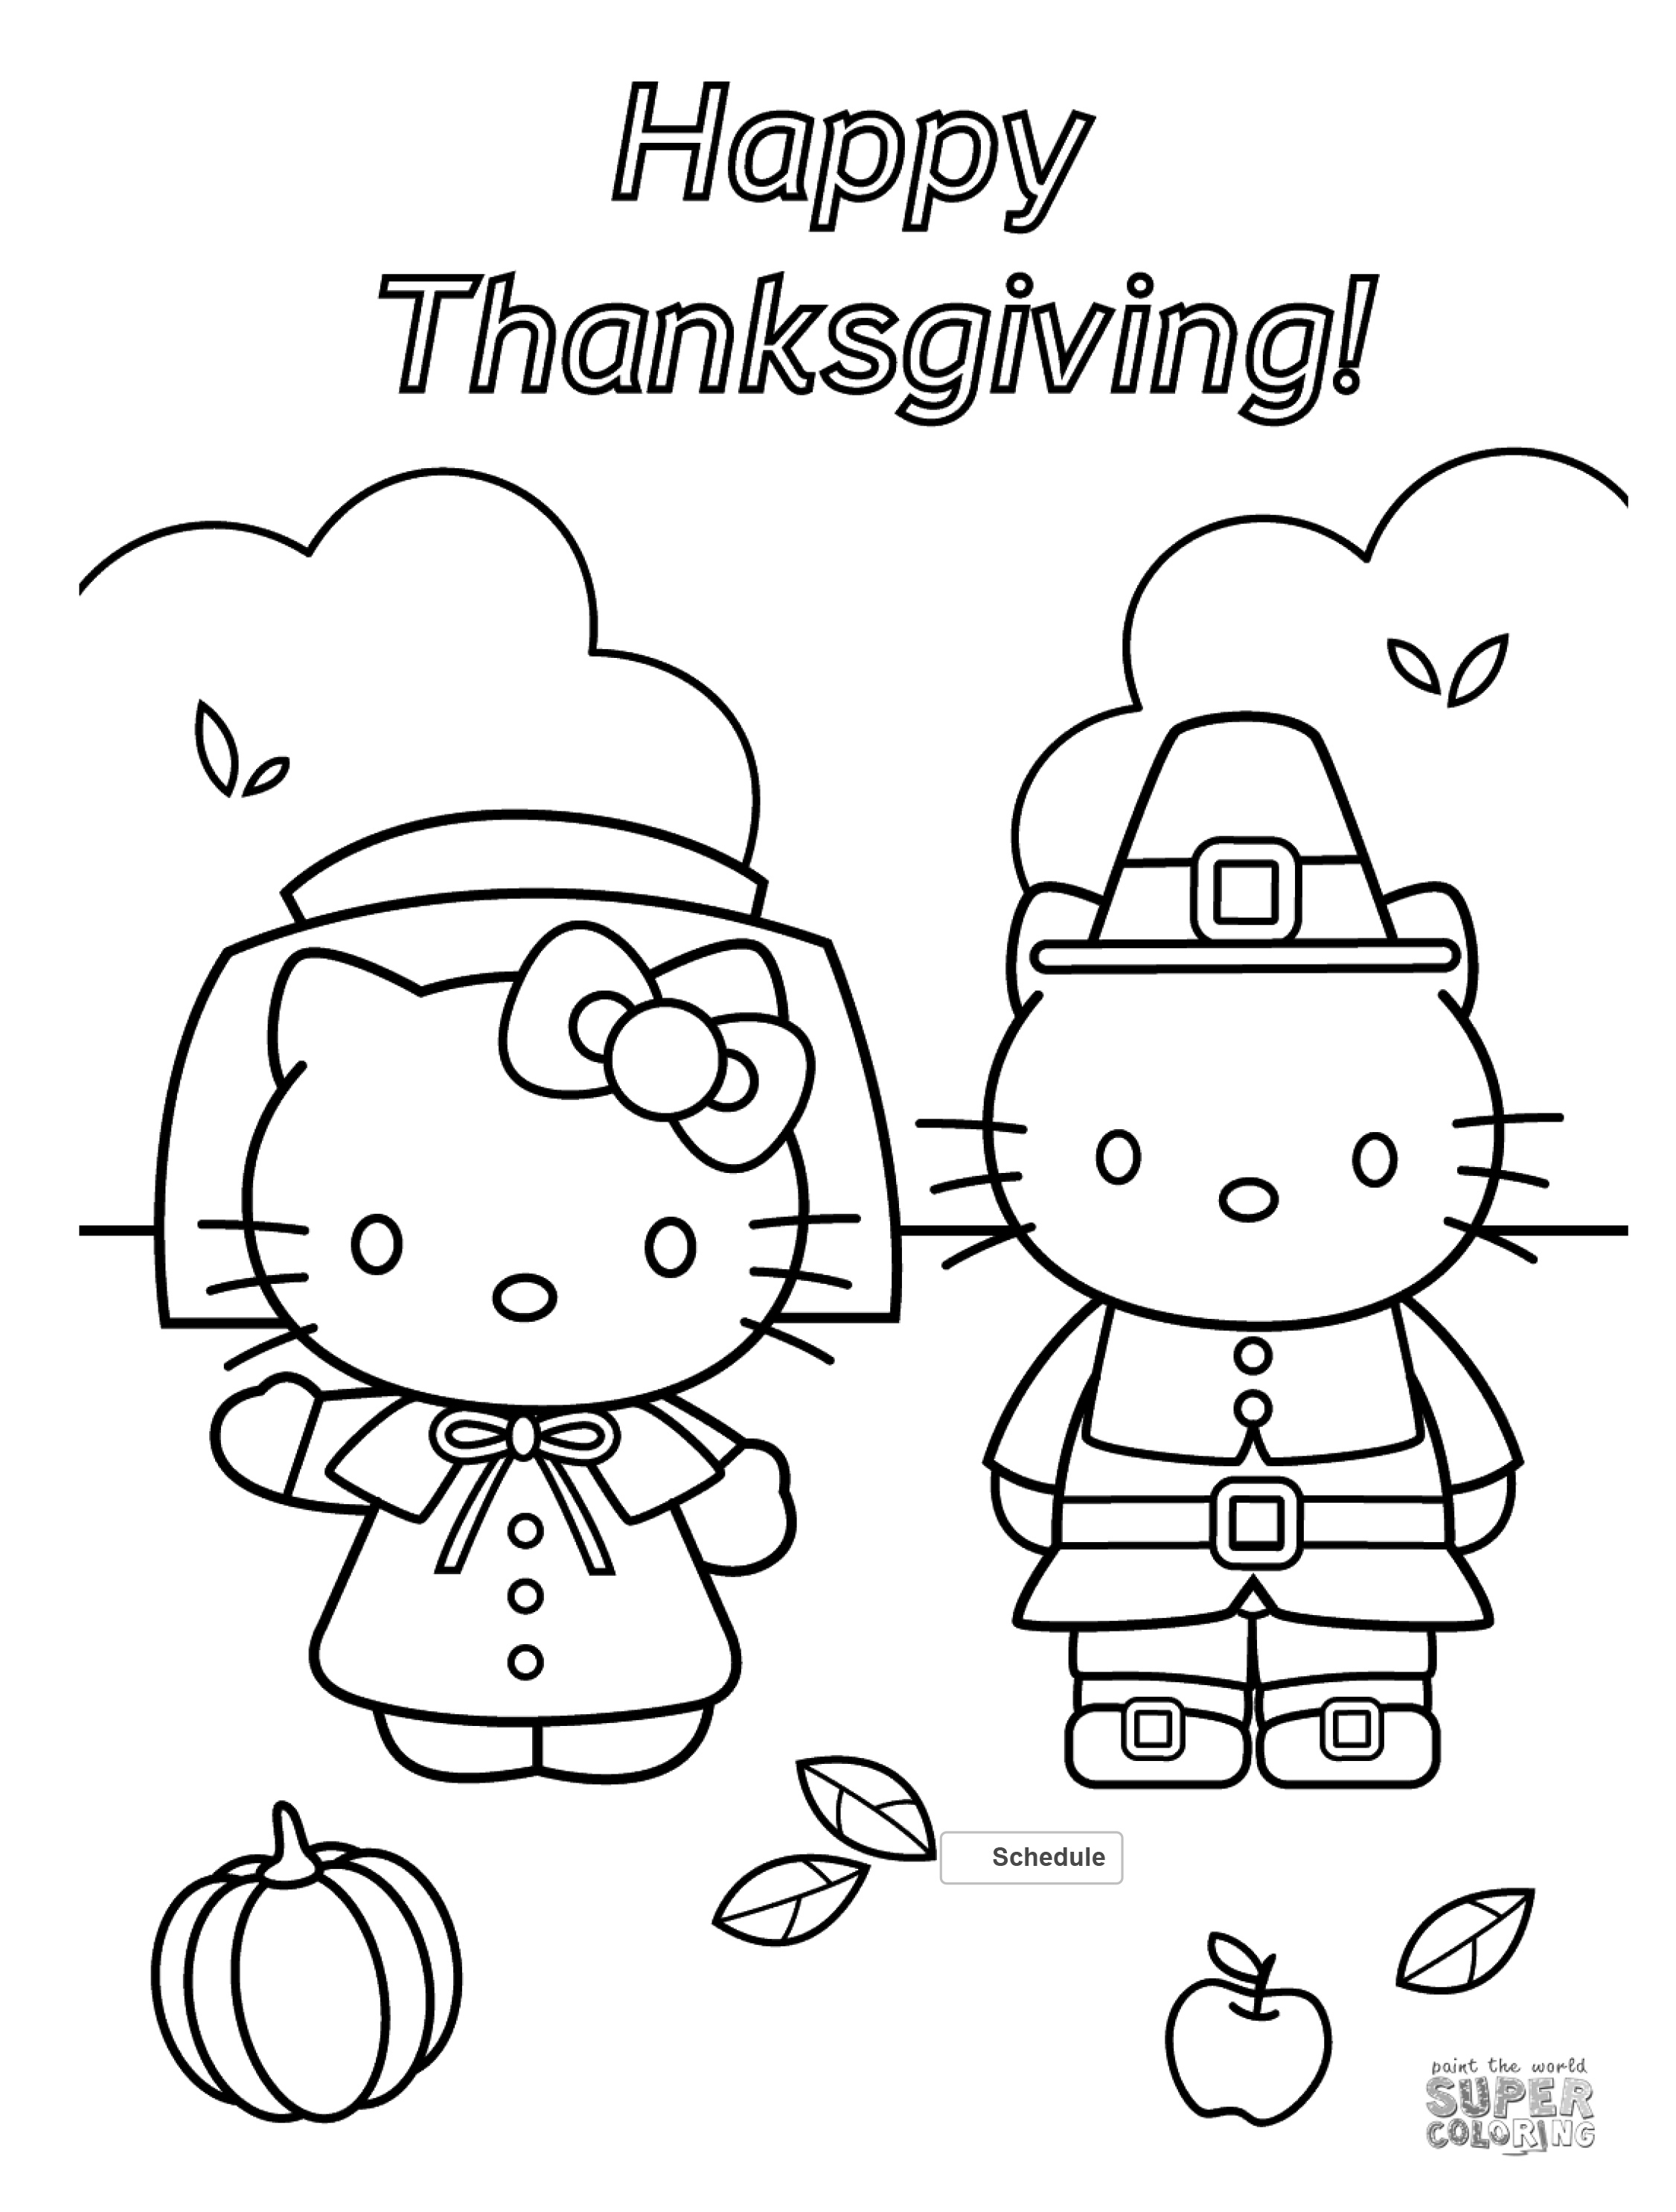 Free Thanksgiving Coloring Pages For Adults & Kids - Happiness Is - Free Printable Thanksgiving Coloring Pages